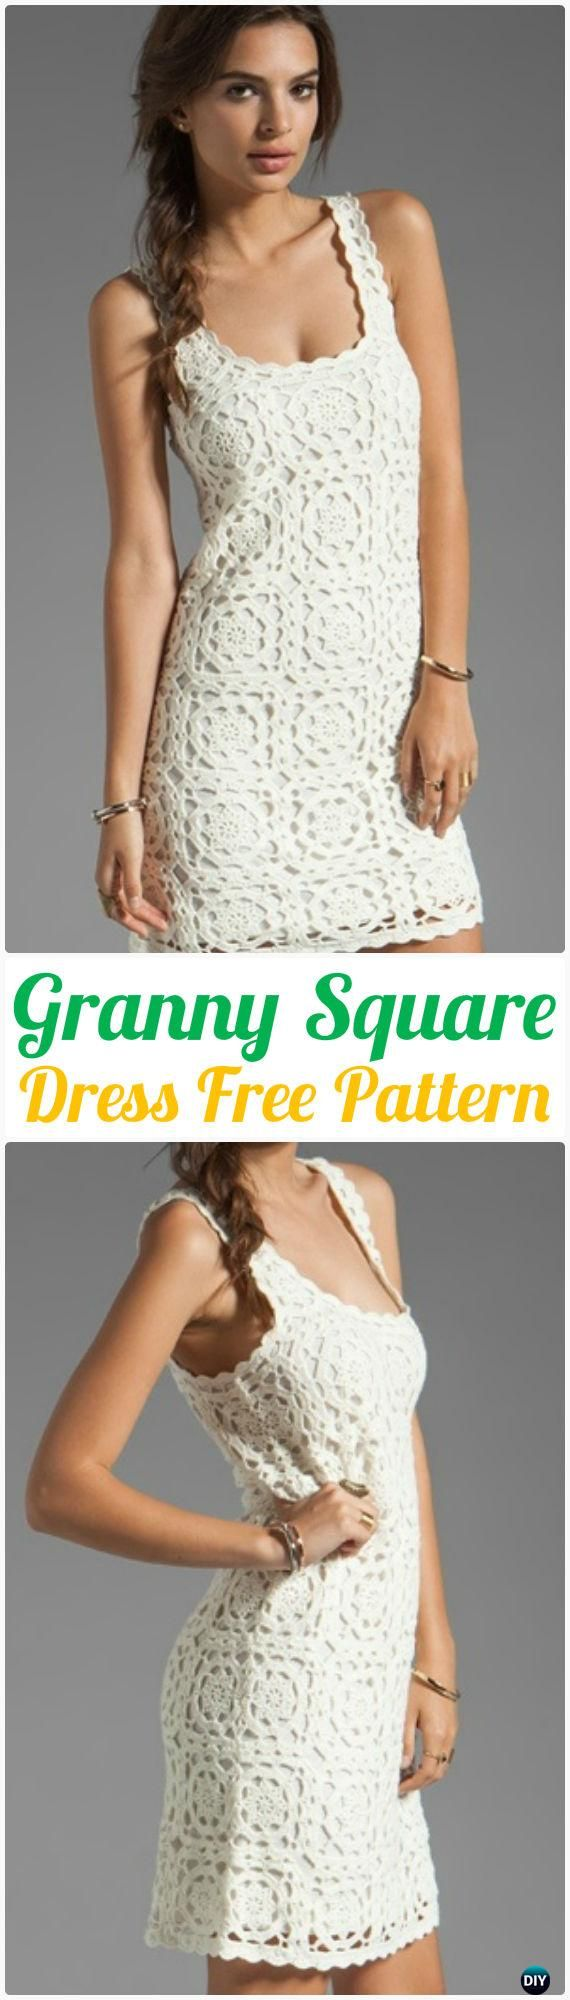 Crochet Granny Square Dress Pattern : 15+ best ideas about Crochet Clothes on Pinterest ...